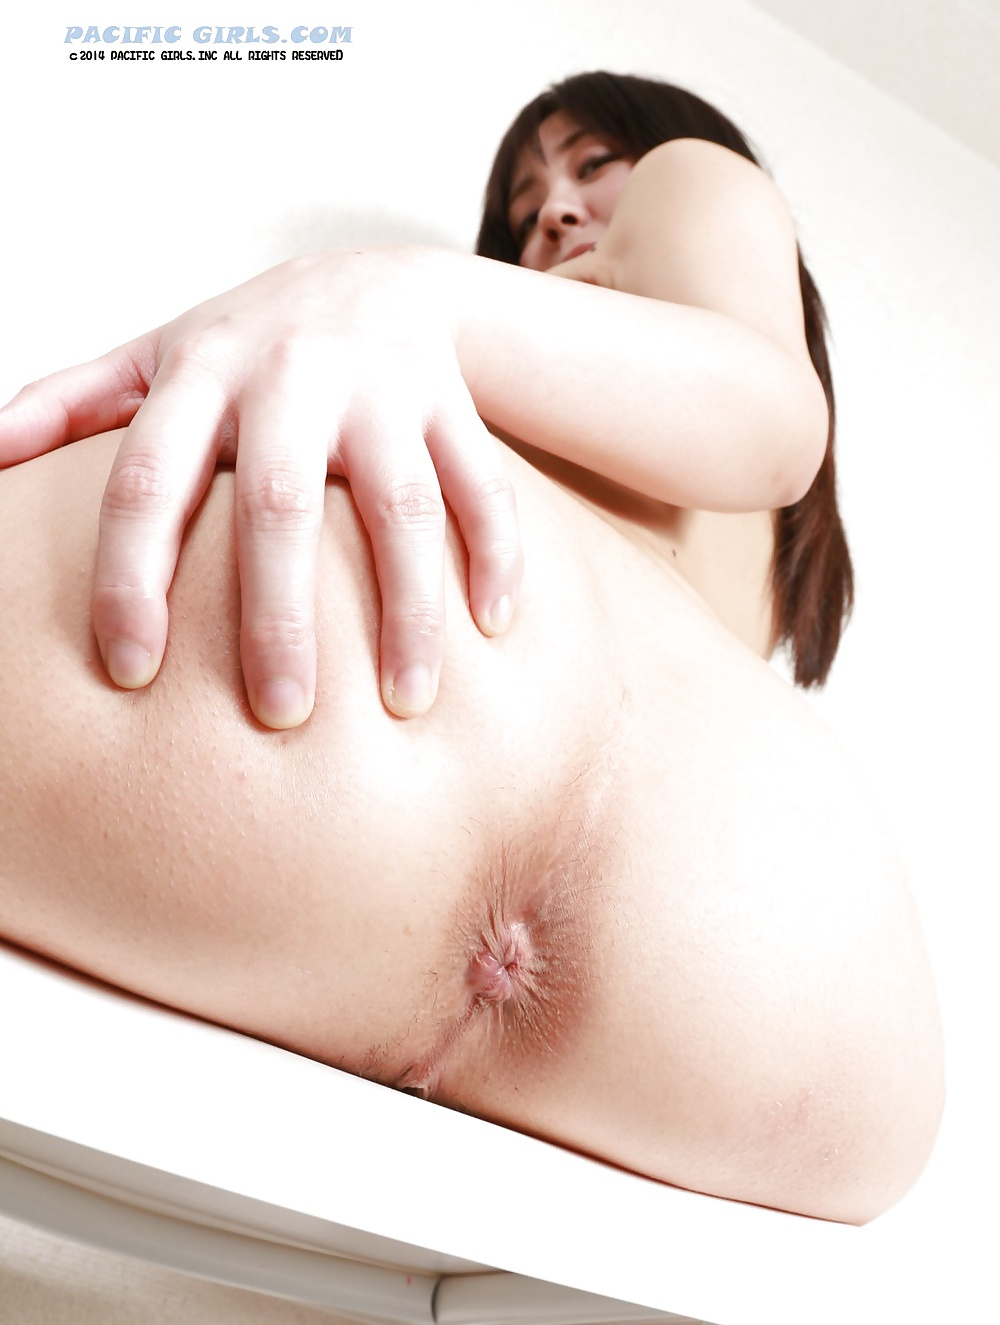 Asian Asshole Pics With Naked Asian Women